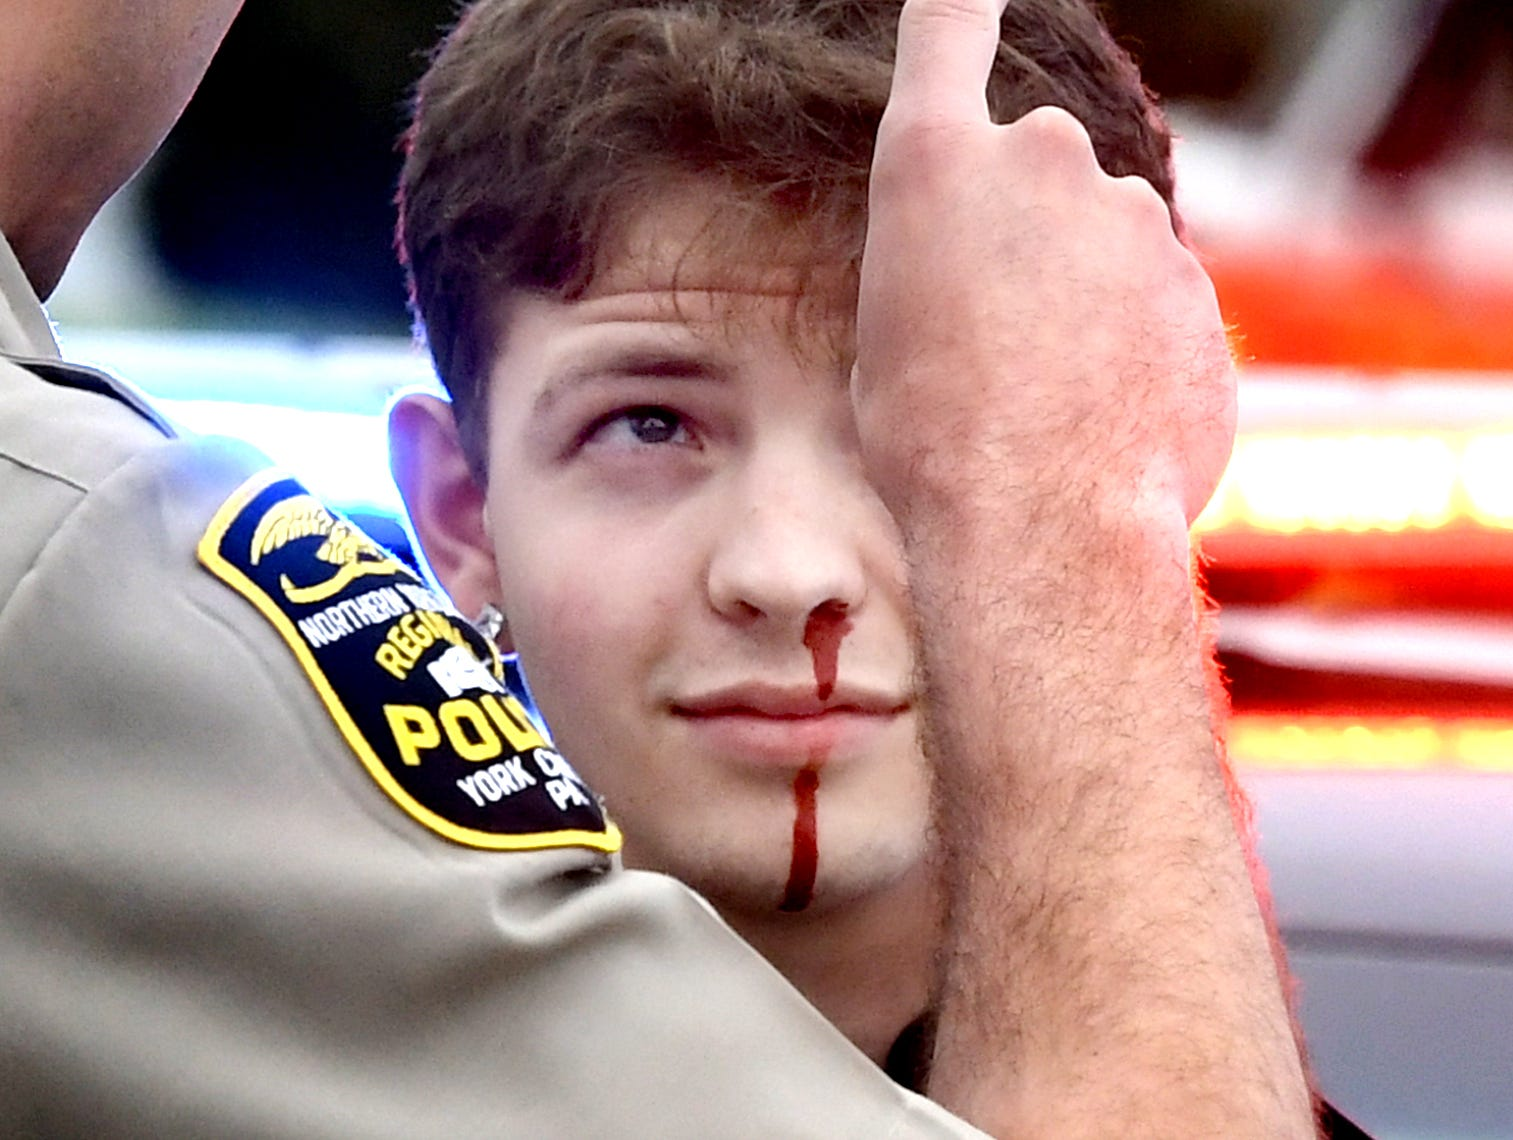 Dover Area High School senior Bronson Bitner is checked for sobriety during a mock car accident at the Dover Area High School Thursday, May 9, 2019. Local fire, ambulance and police volunteered for the event which reminds high school upperclassmen to be safe during prom season. Dover's prom in Saturday, May 11. Bill Kalina photo